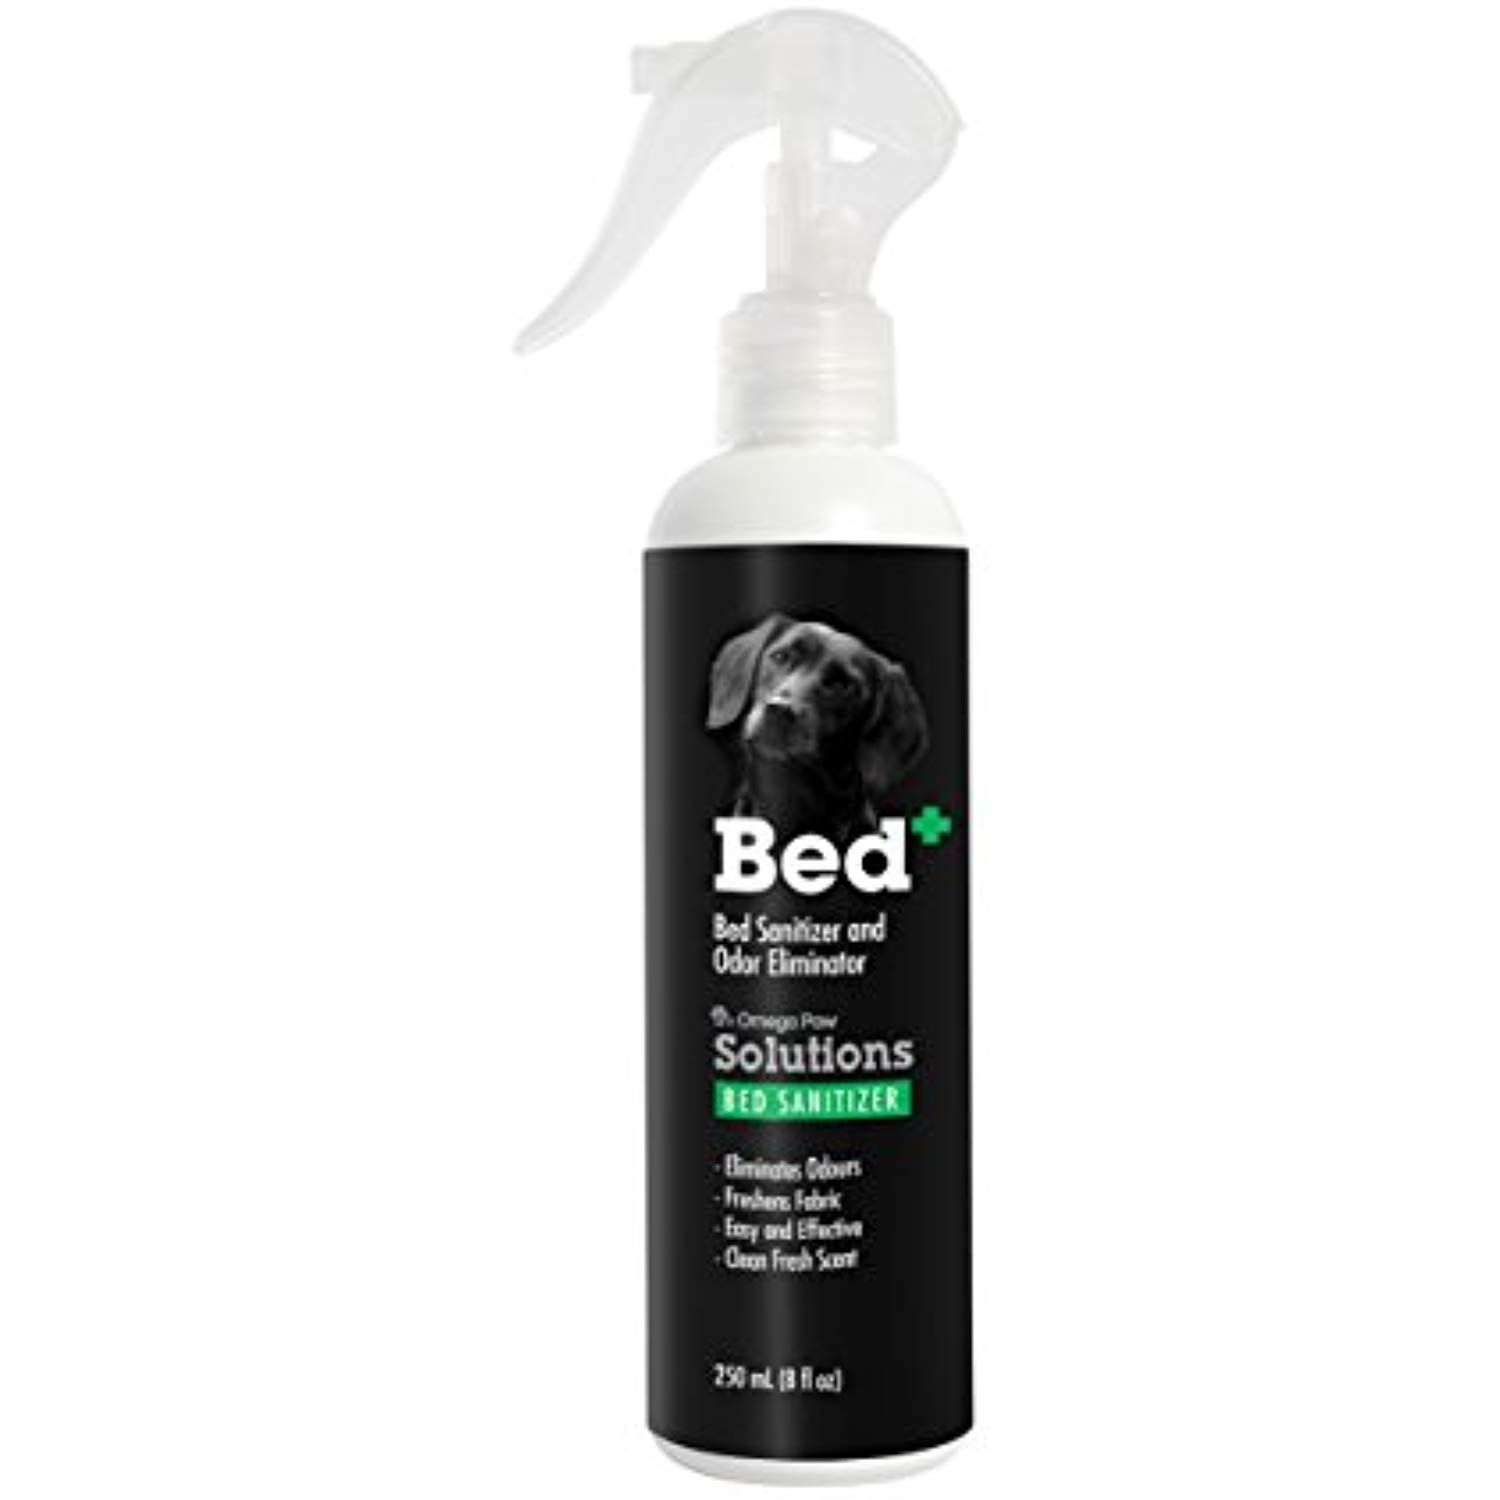 Omega Paw Solutions Bed Sanitizer Remedies For Dogs Learn More By Visiting The Image Link This Is An Affiliate Link Sanitizer Solutions Dog Bed